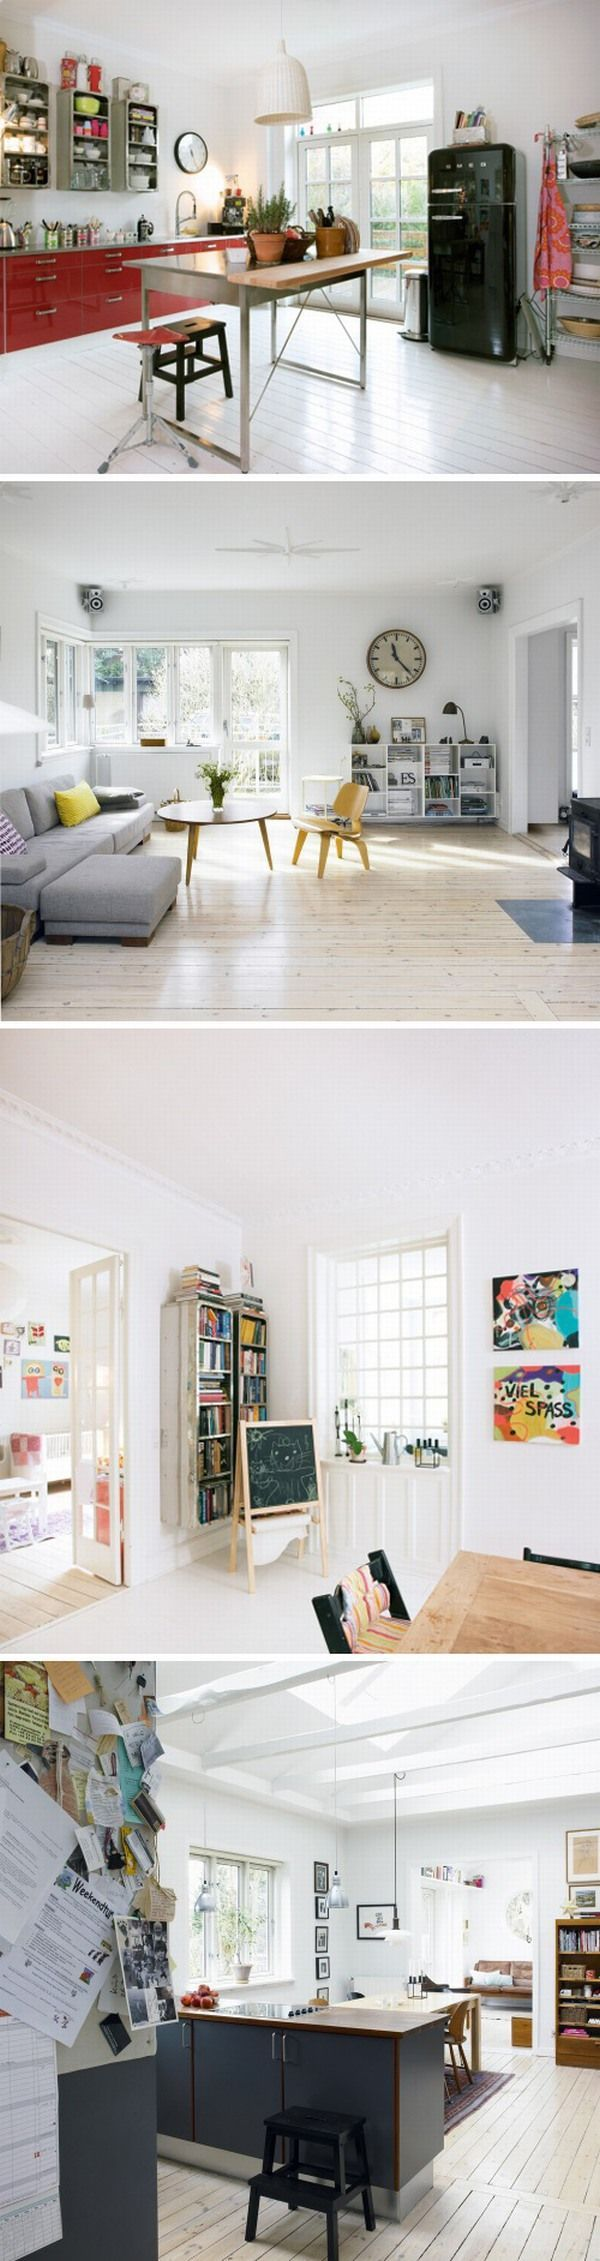 I look at these white walls and they look so pretty...why can't I like my white walls???